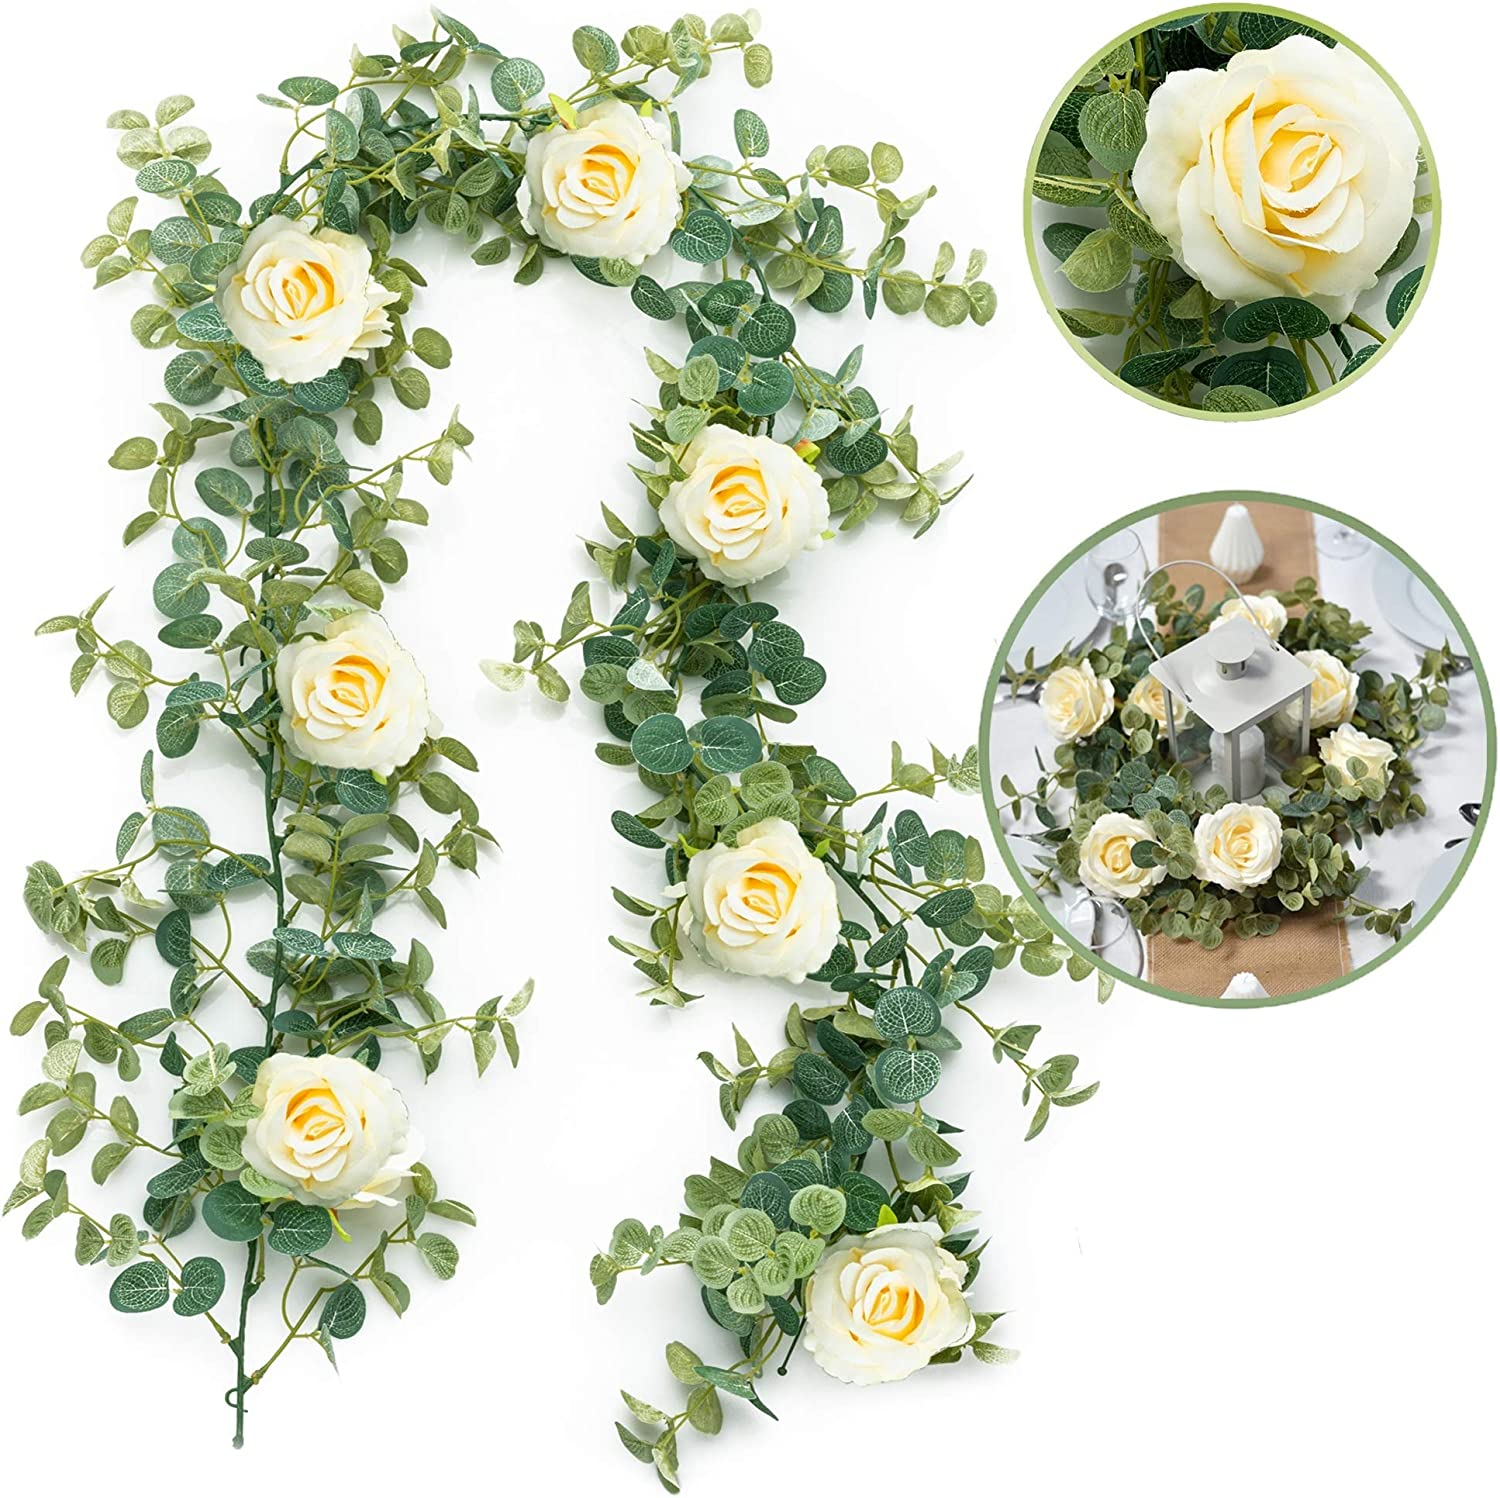 Artificial Eucalyptus Garland with Flowers Champagne Roses, 6' Long Fake Flower Garland, Eucalyptus Leaves Greenery Garland Flower Decorations Home Party Wedding Arch Wedding Table Garland